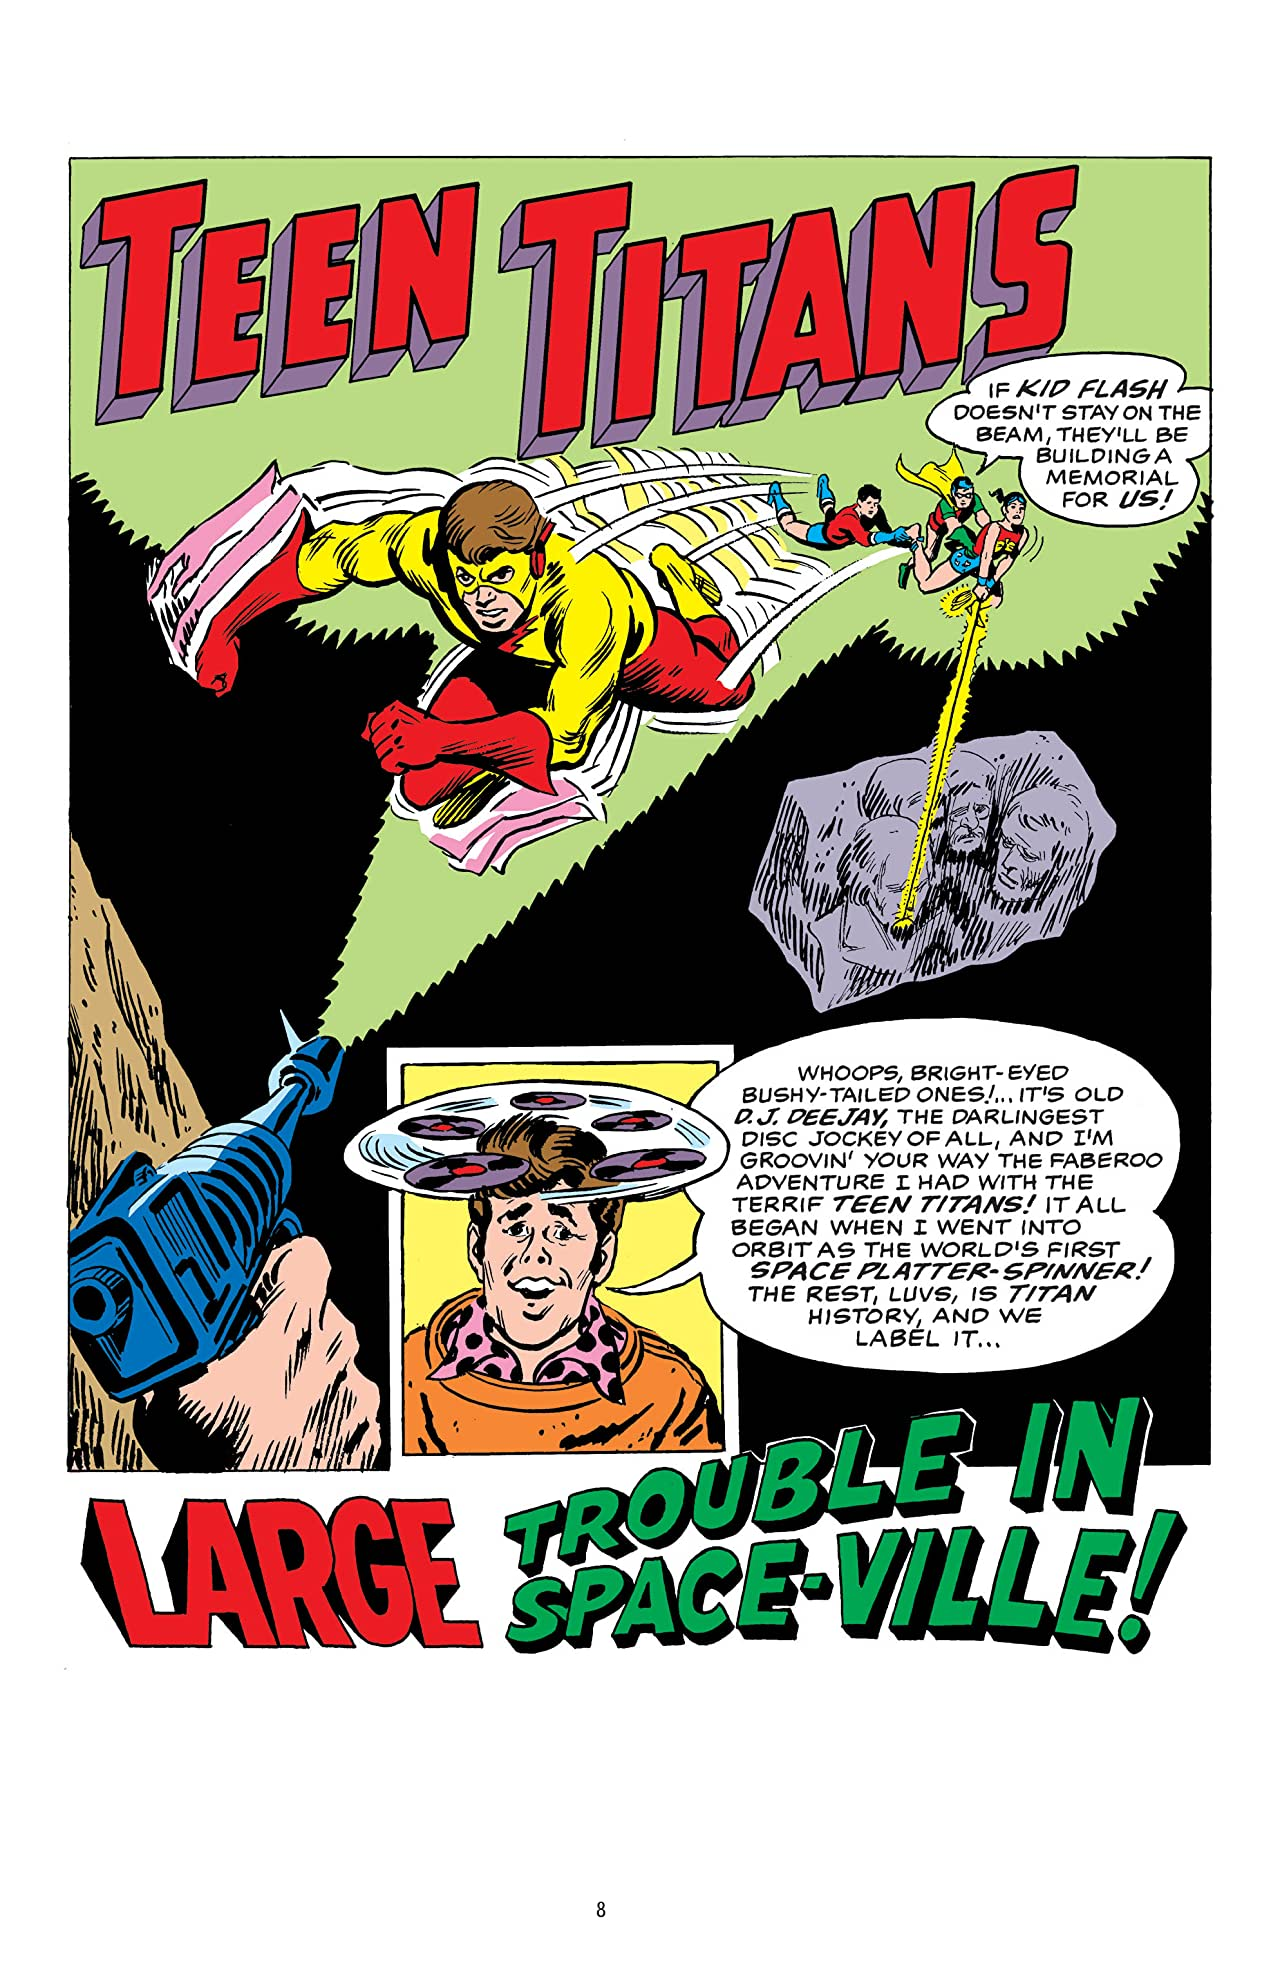 Teen Titans: The Silver Age  Vol. 2